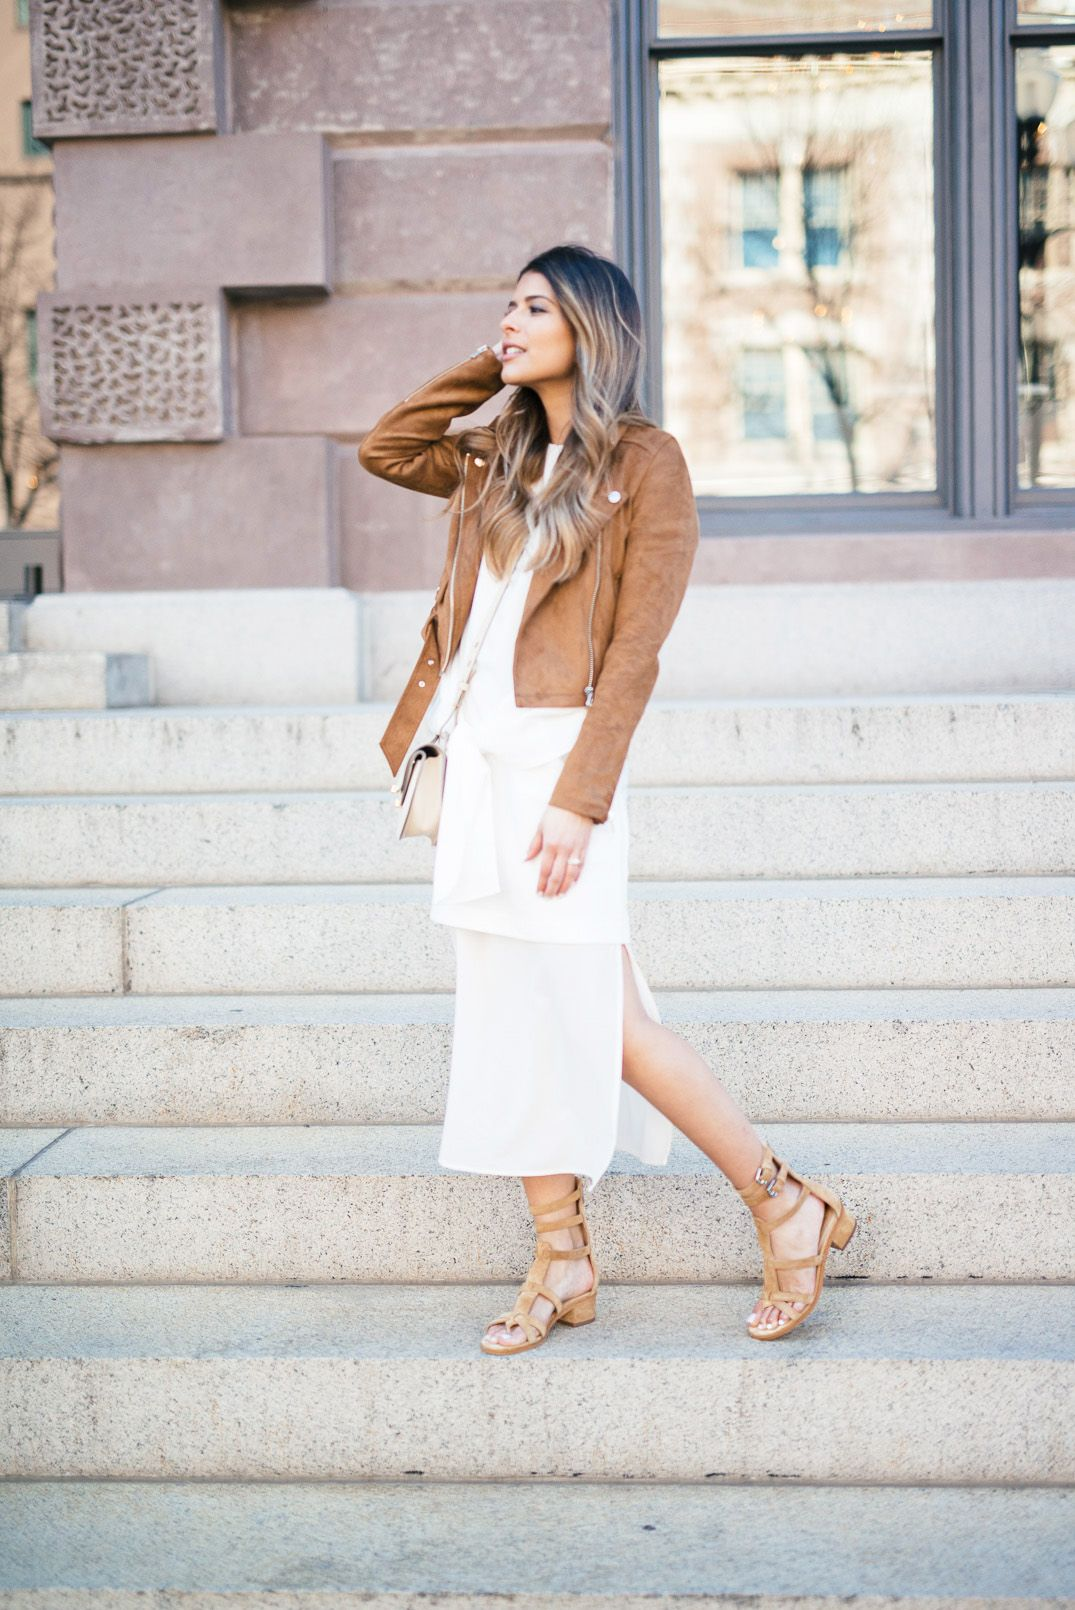 29cf6f2b58c1 Gladiator sandals will always look good worn with a maxi dress; especially  in white! This dress brings out the true rustic style of the sandals, ...